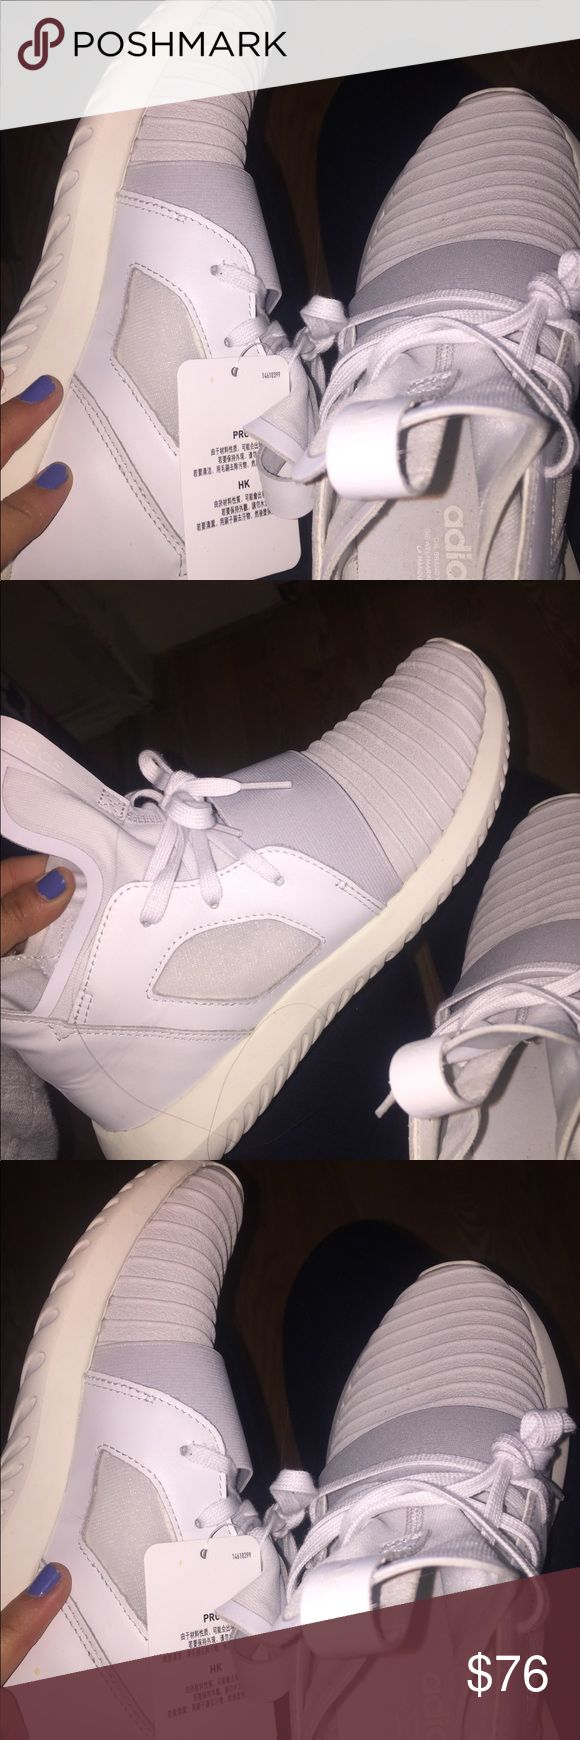 New adidas shoes never worn New adidas shoes never worn Adidas by Stella McCartney Shoes Athletic Shoes